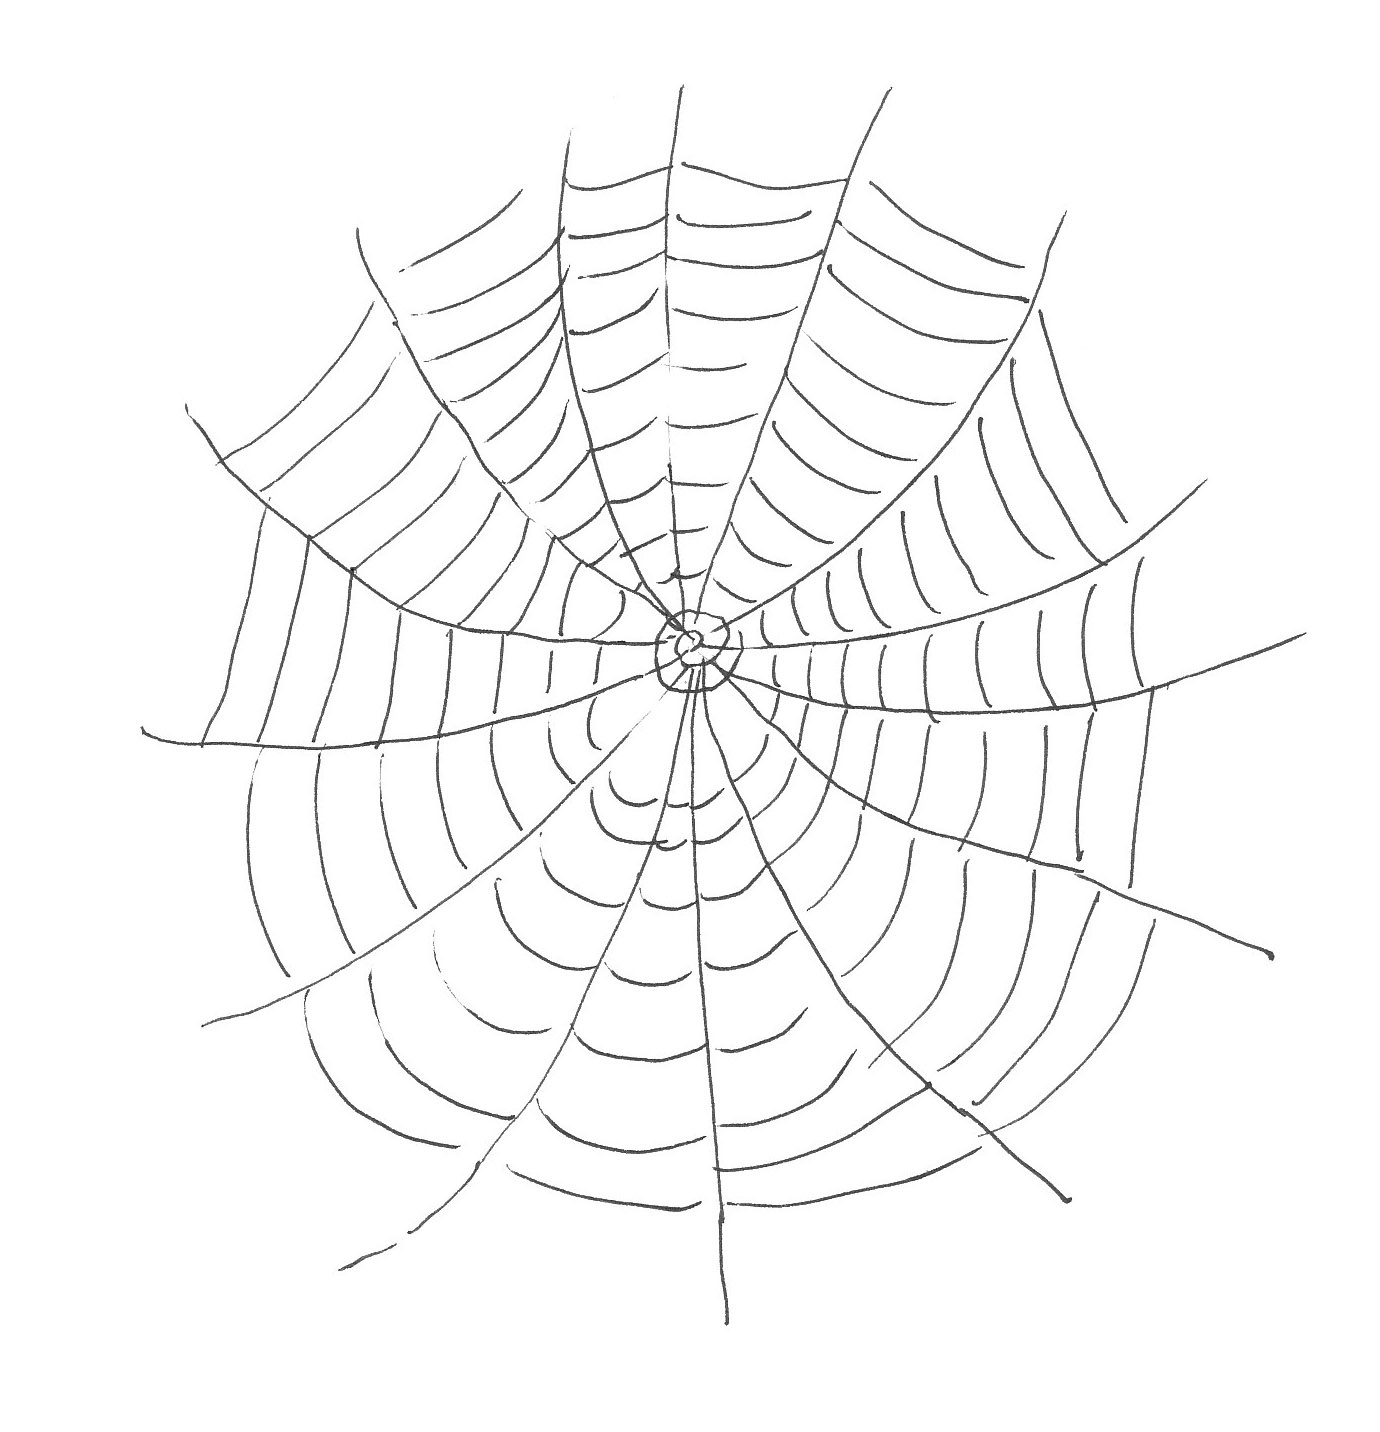 Free Printable Spider Web Coloring Pages For Kids - Spider Web Stencil Free Printable